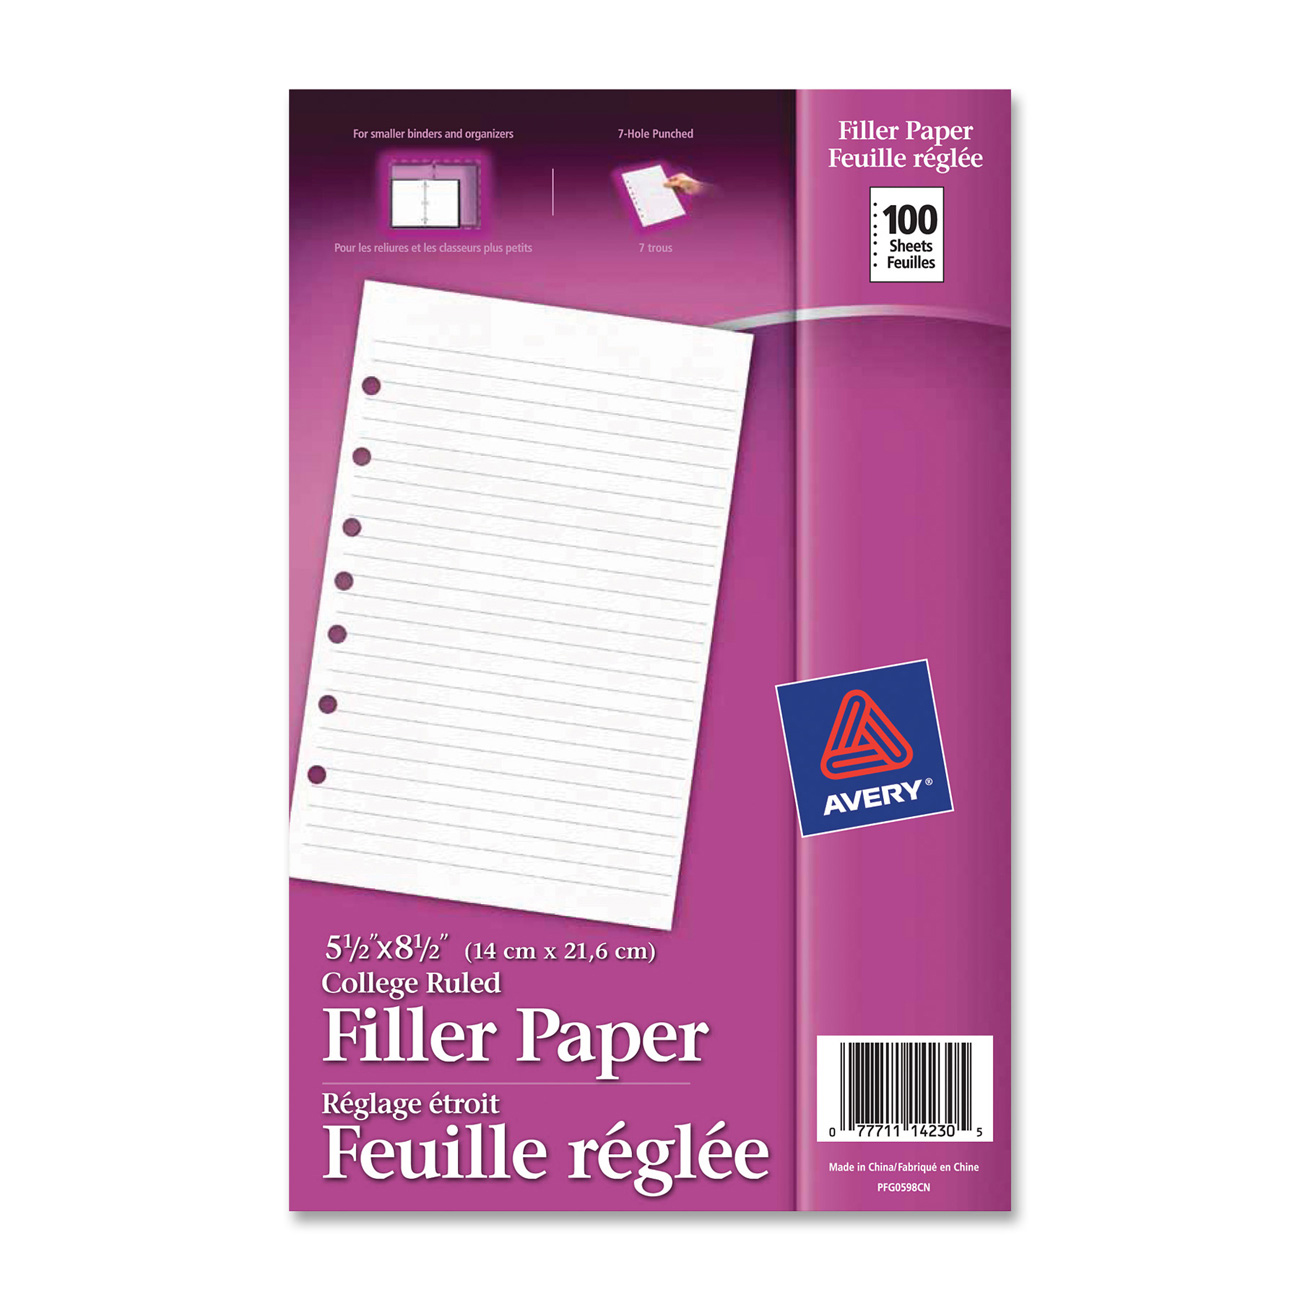 avery r mini 5 1 2 x 8 1 2 binder filler paper 14230 100 sheets